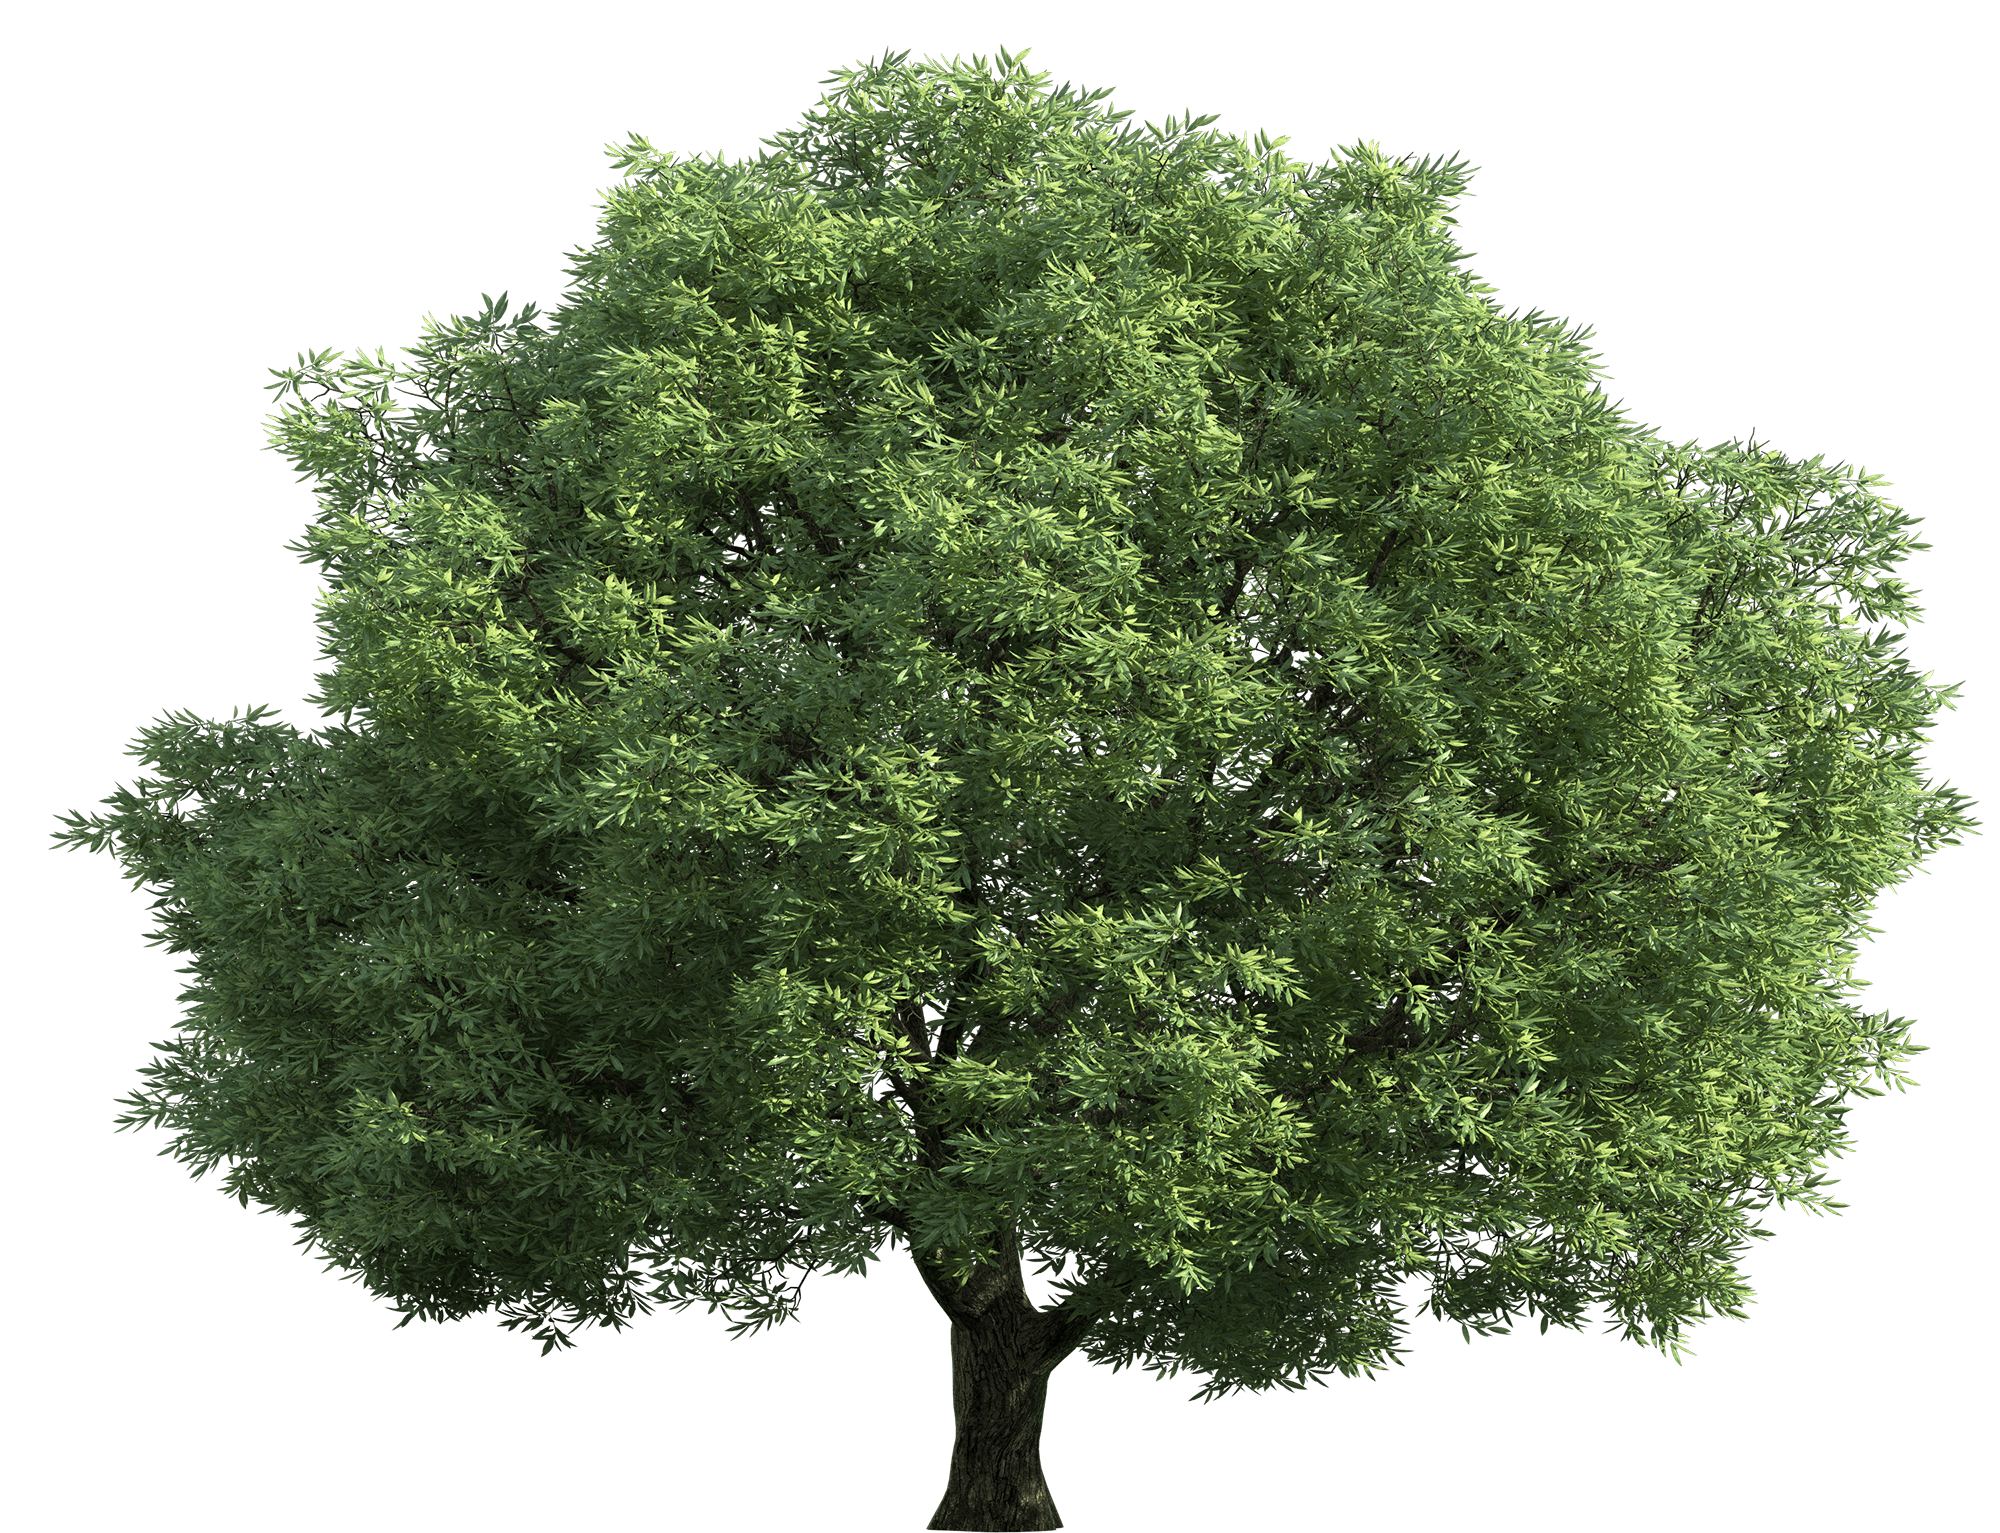 3d Falling Leaves Animated Wallpaper Narra Tree Png Transparent Narra Tree Png Images Pluspng